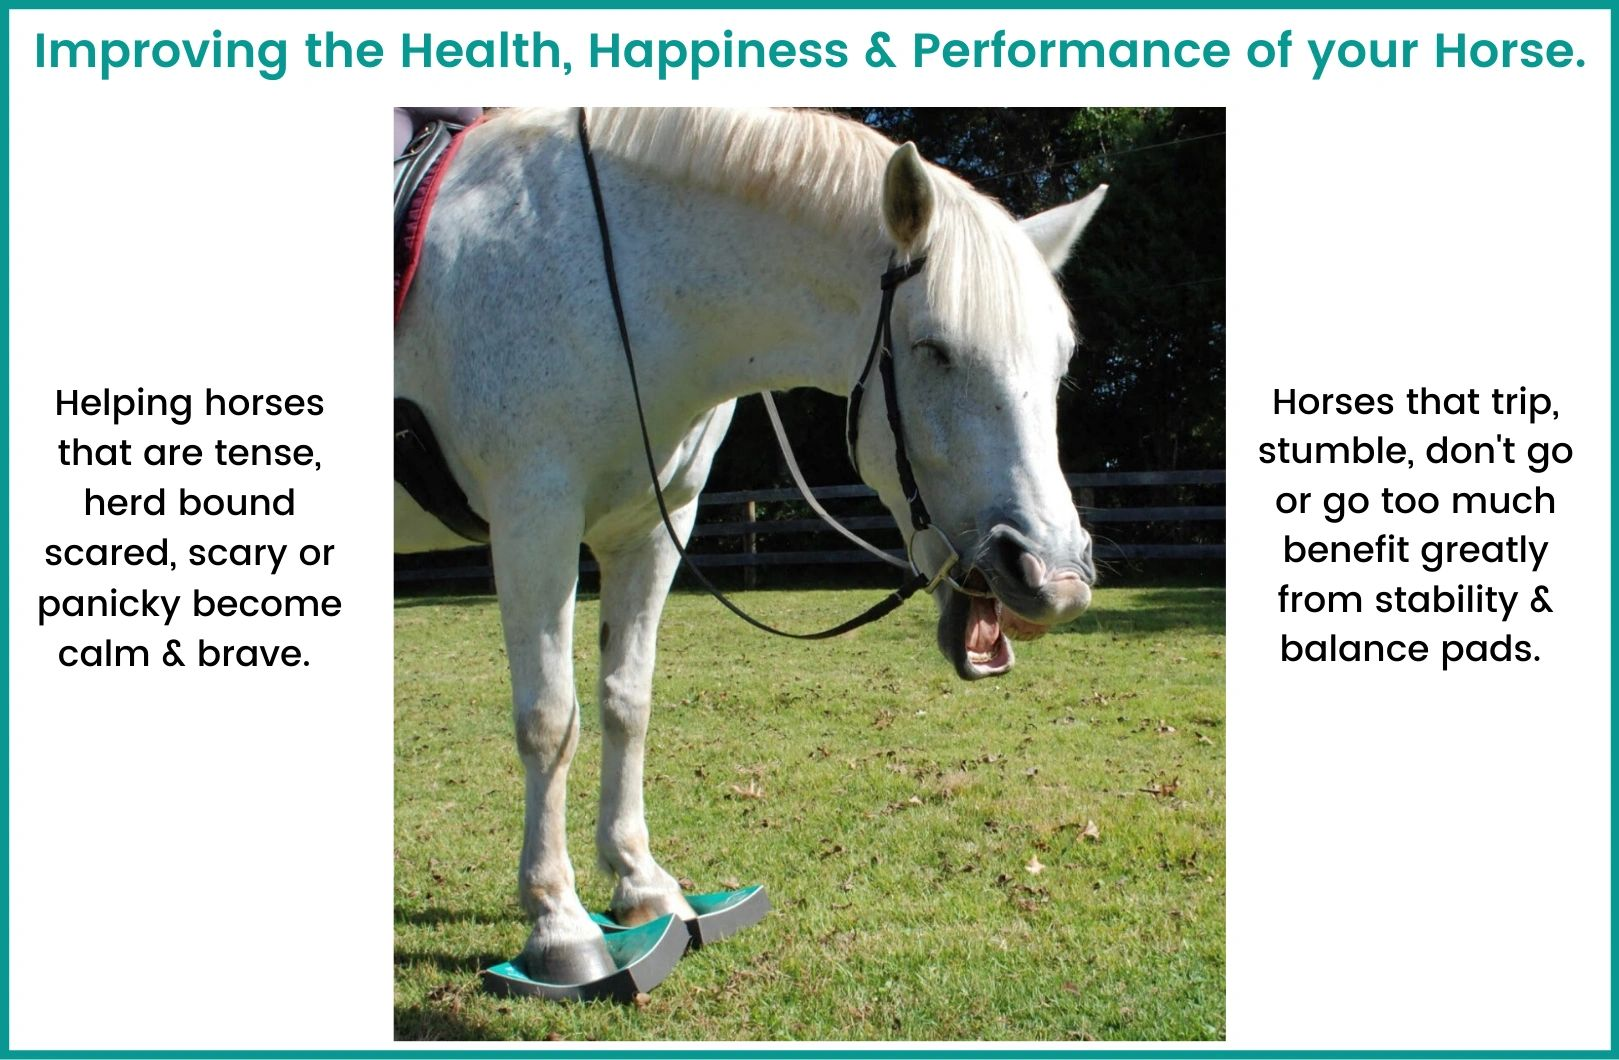 SURE FOOT Pads help horses that trip, stumble, bolt, won't go, won't float or are in rehabilitation.